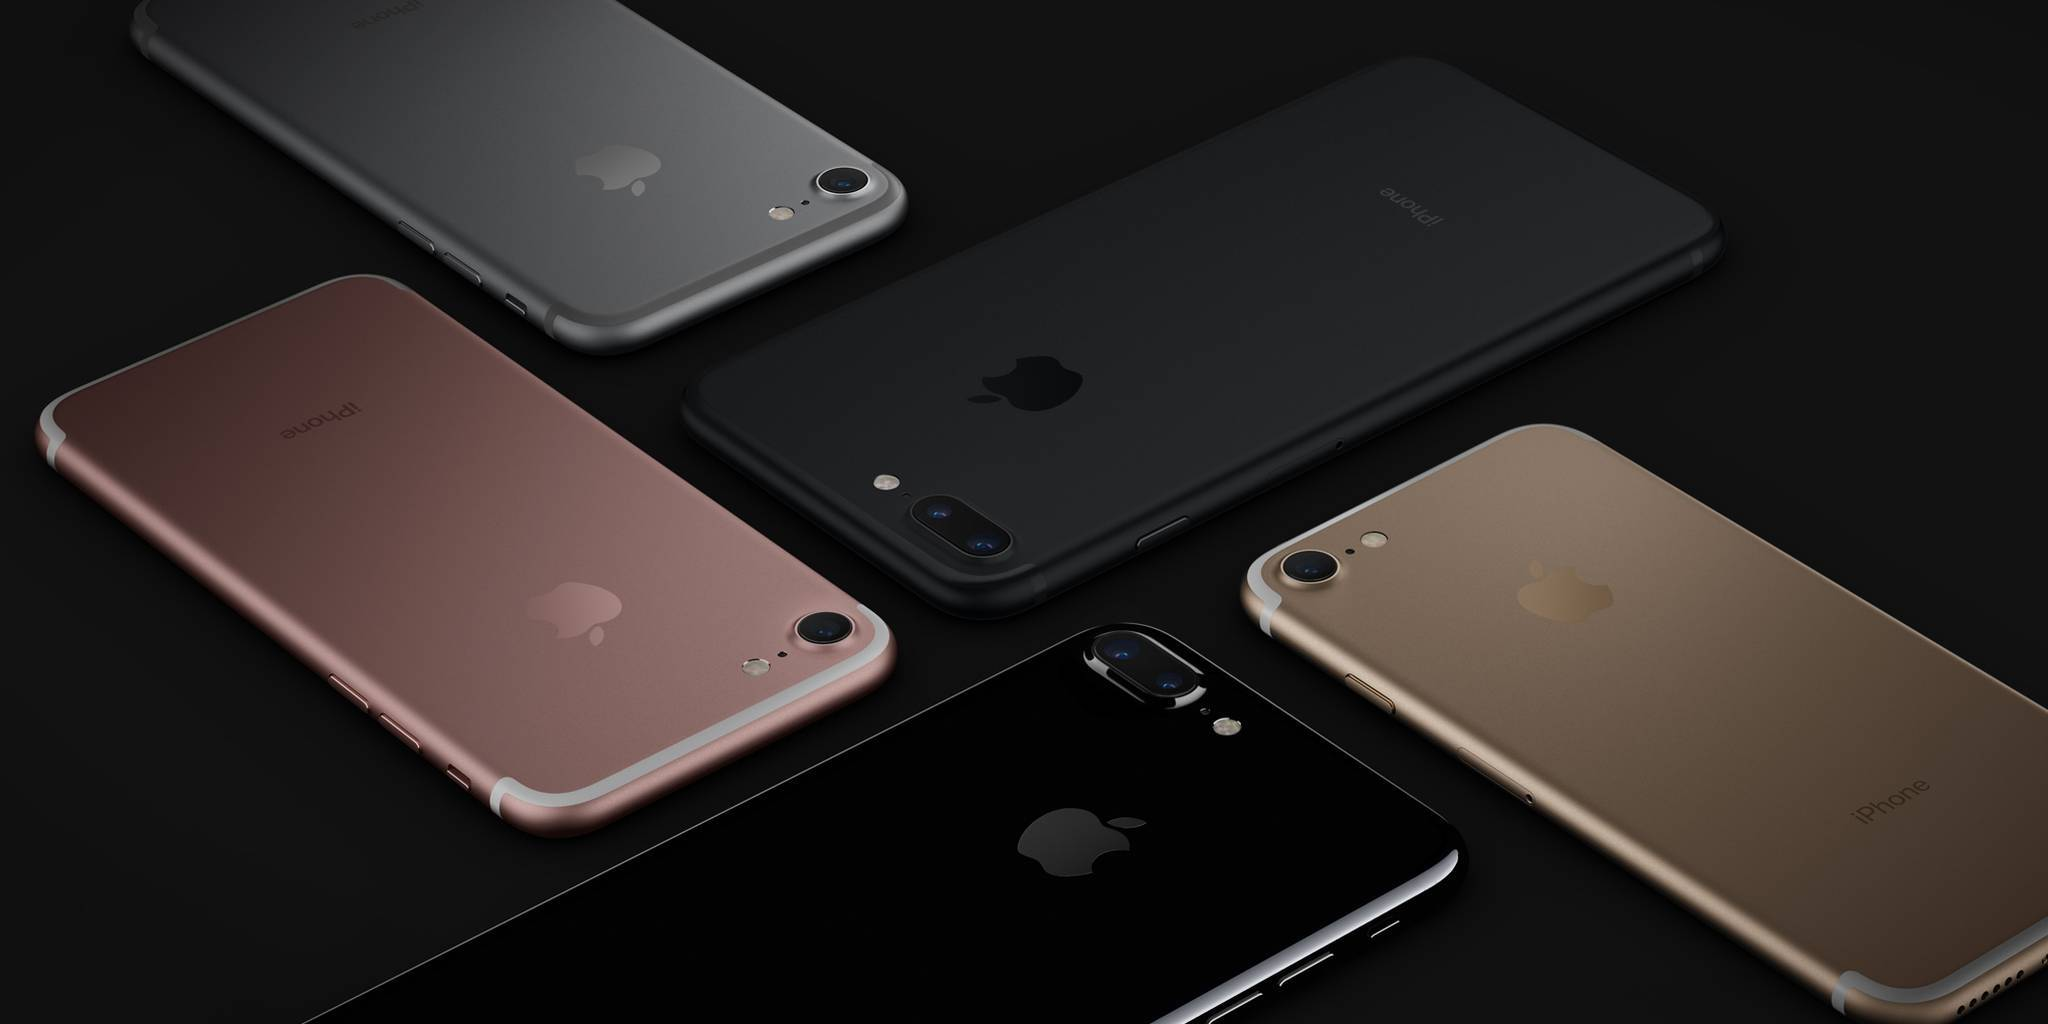 Apple crushes Samsung in holiday sales, Google's Pixel nowhere to be found